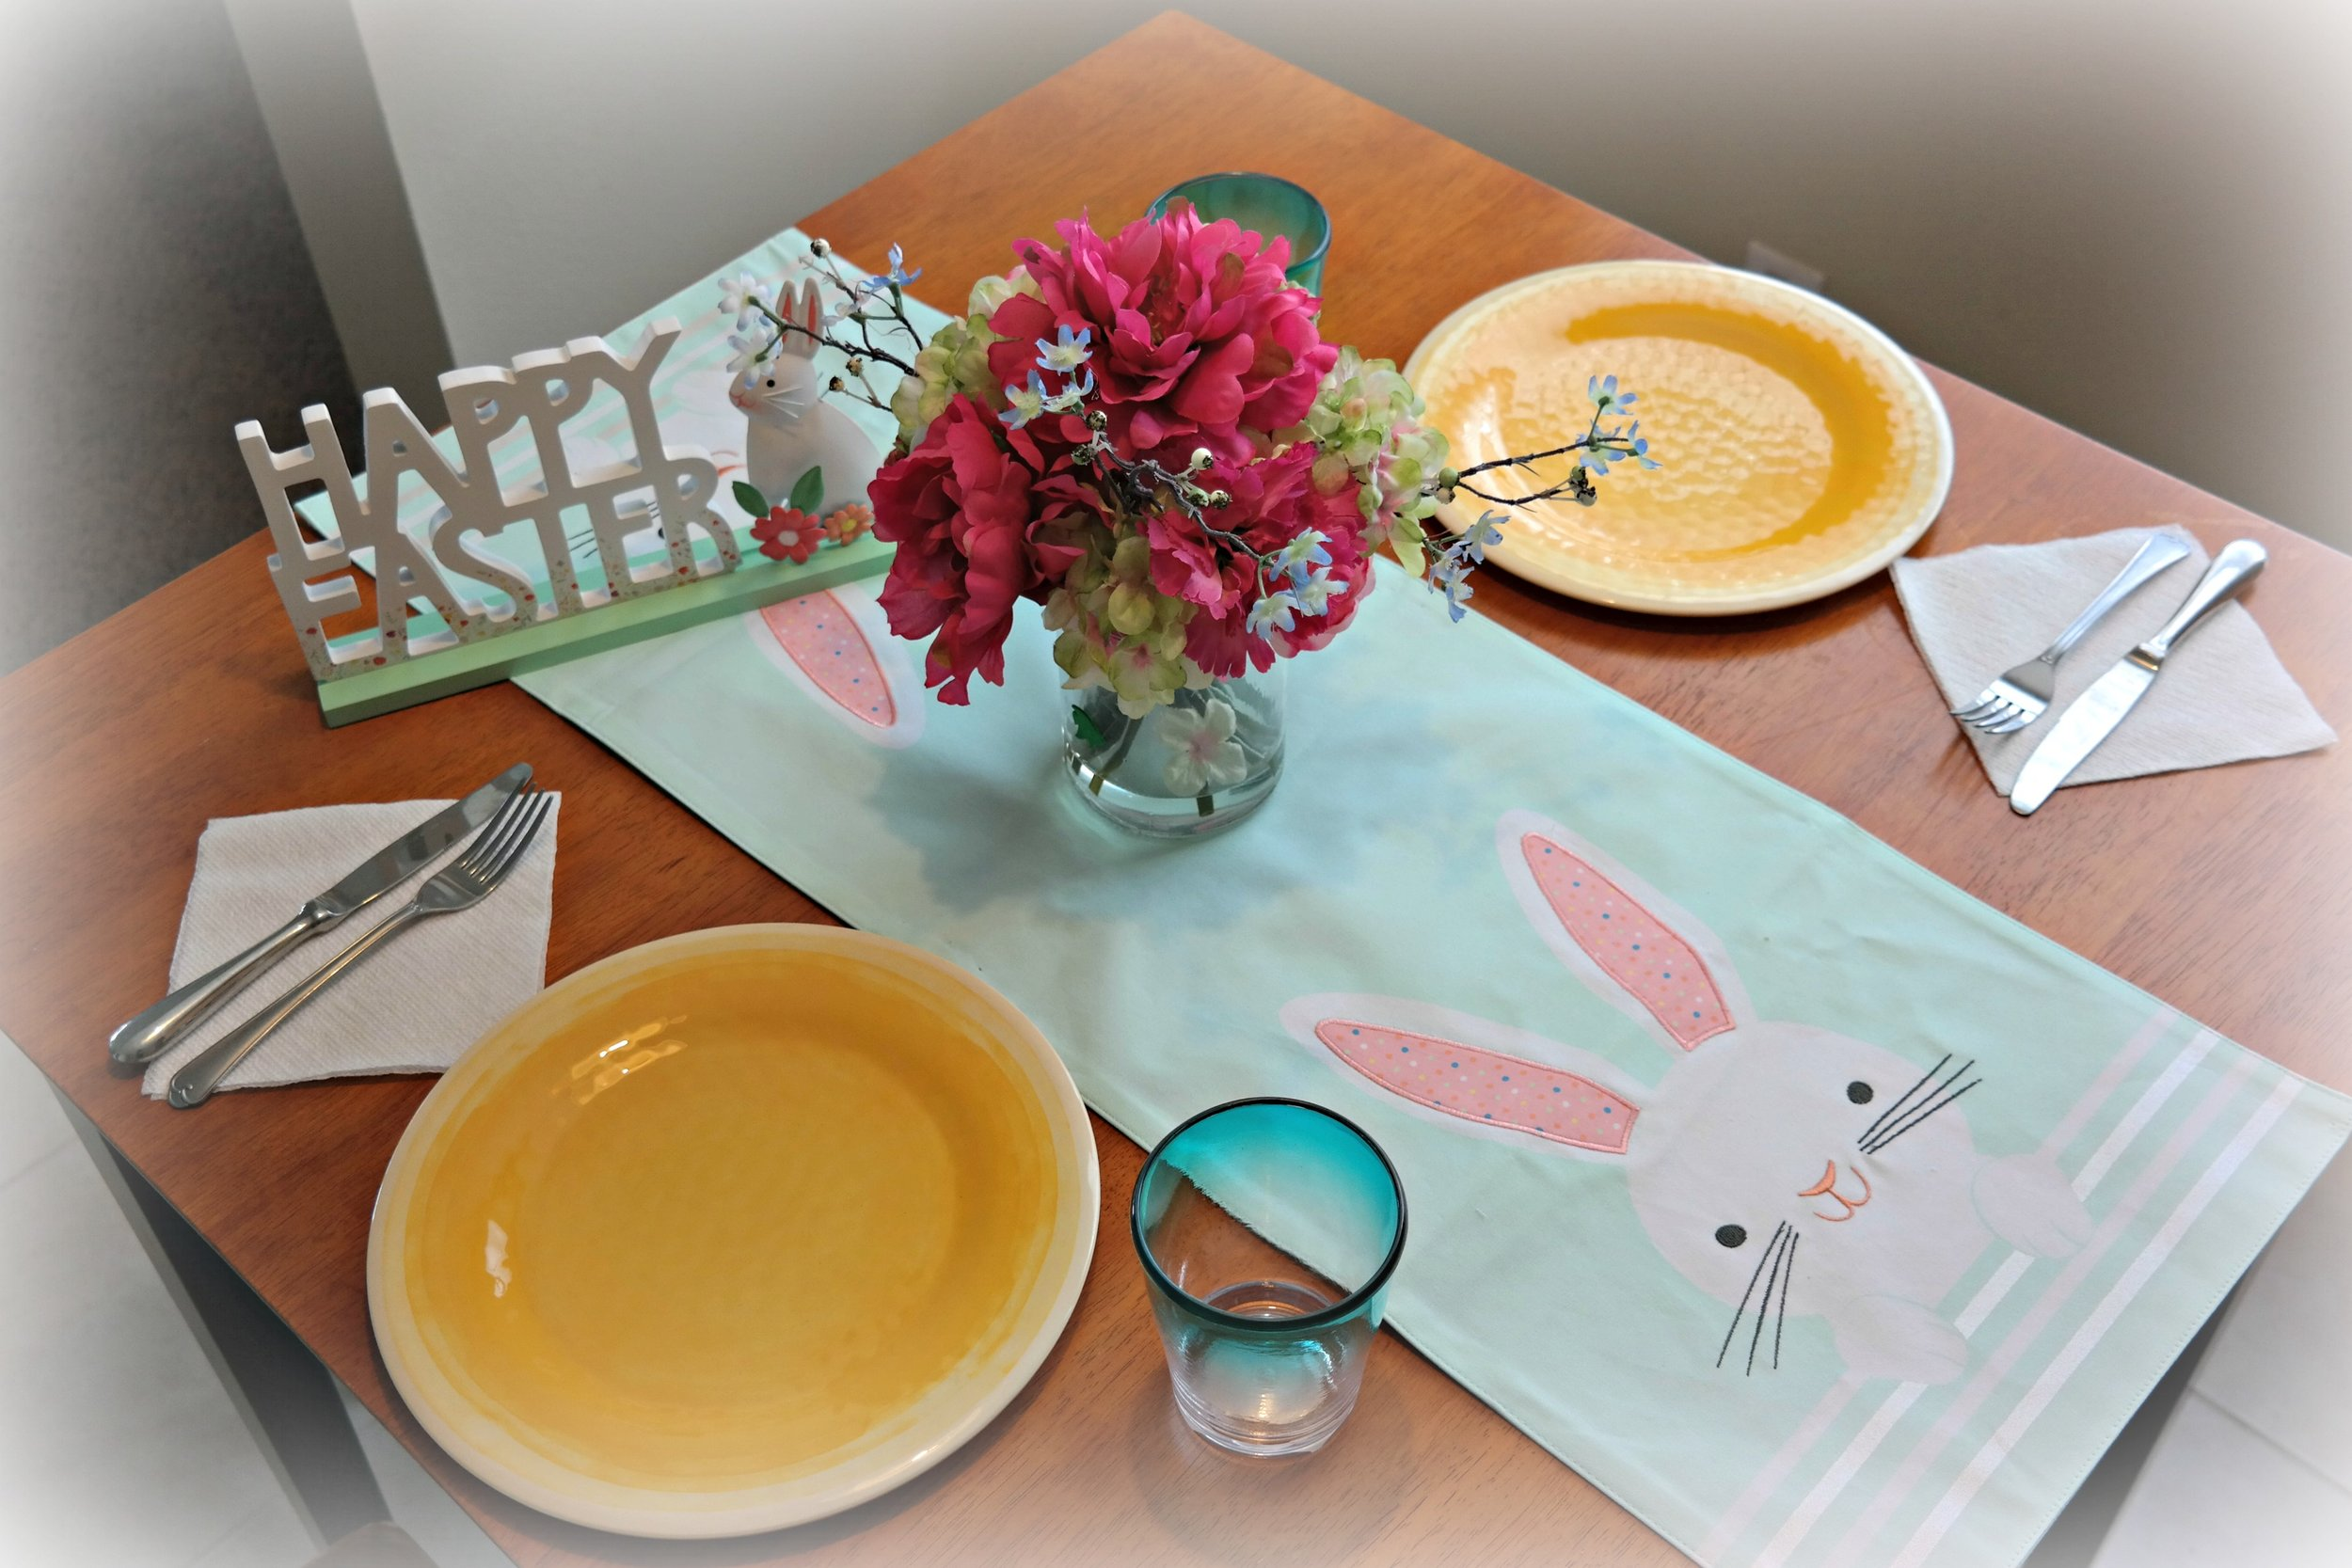 Easter table setting. #SpringAtKohls #spon